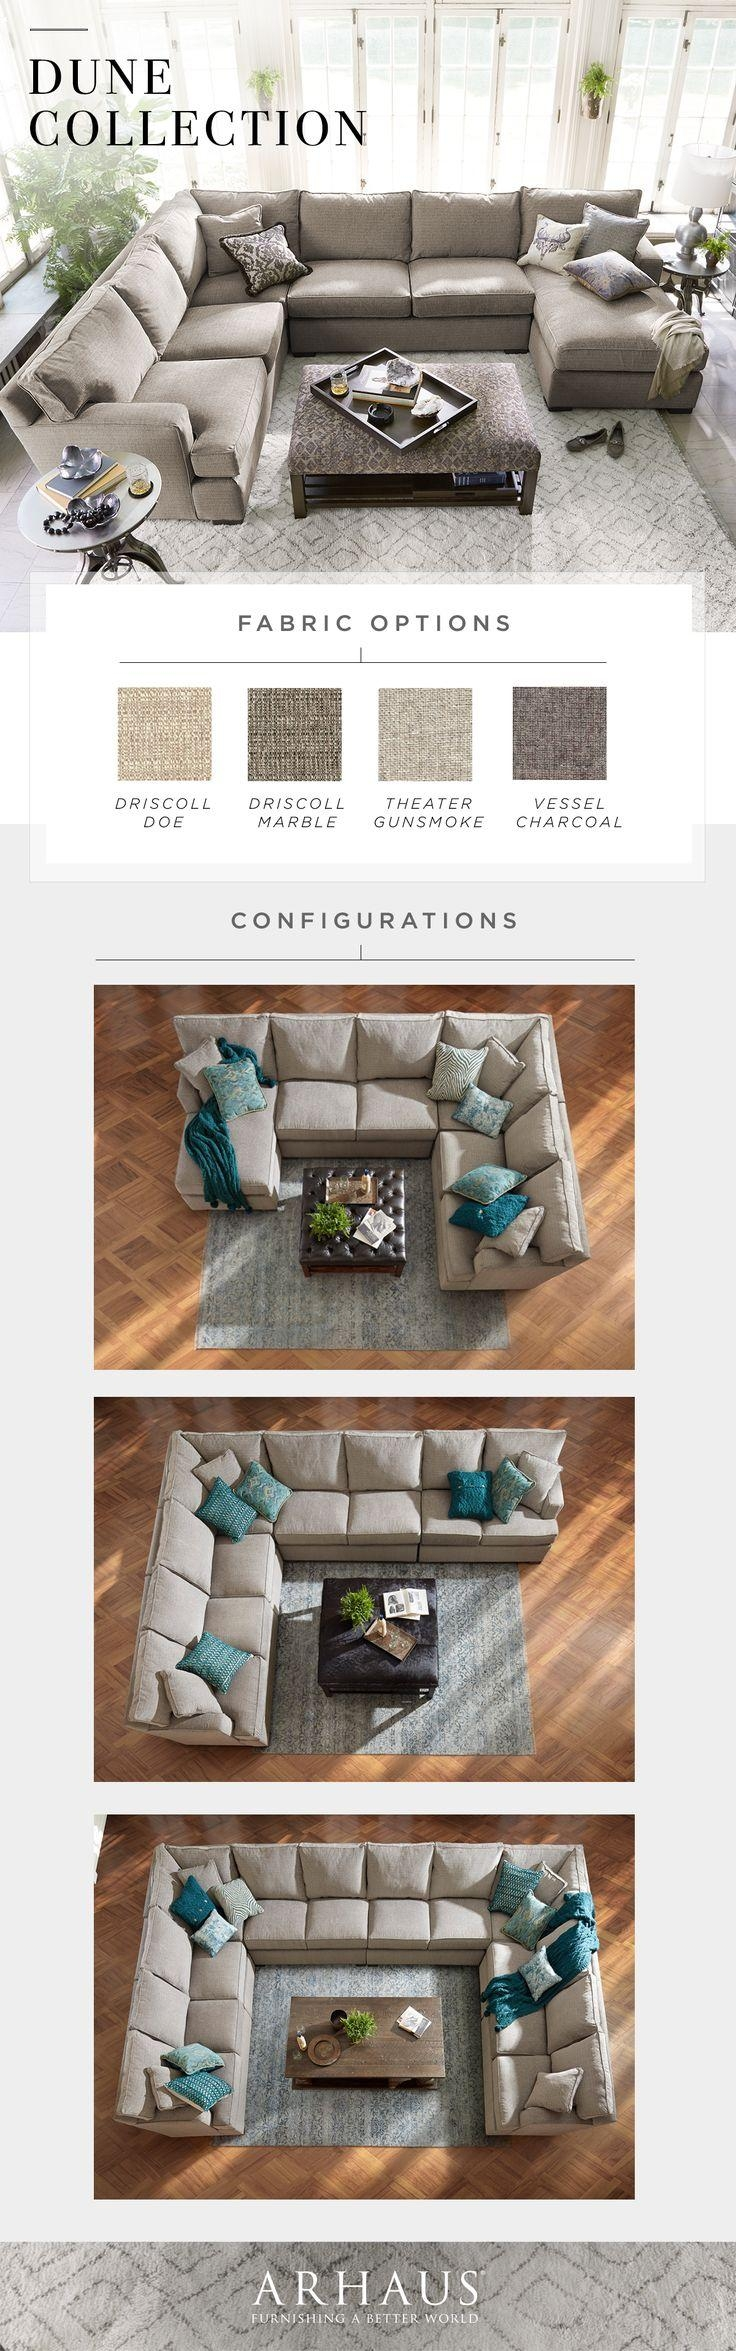 14 Best Sectional Sofas Images On Pinterest | Living Room For Arhaus Emory Sectional (Image 1 of 15)